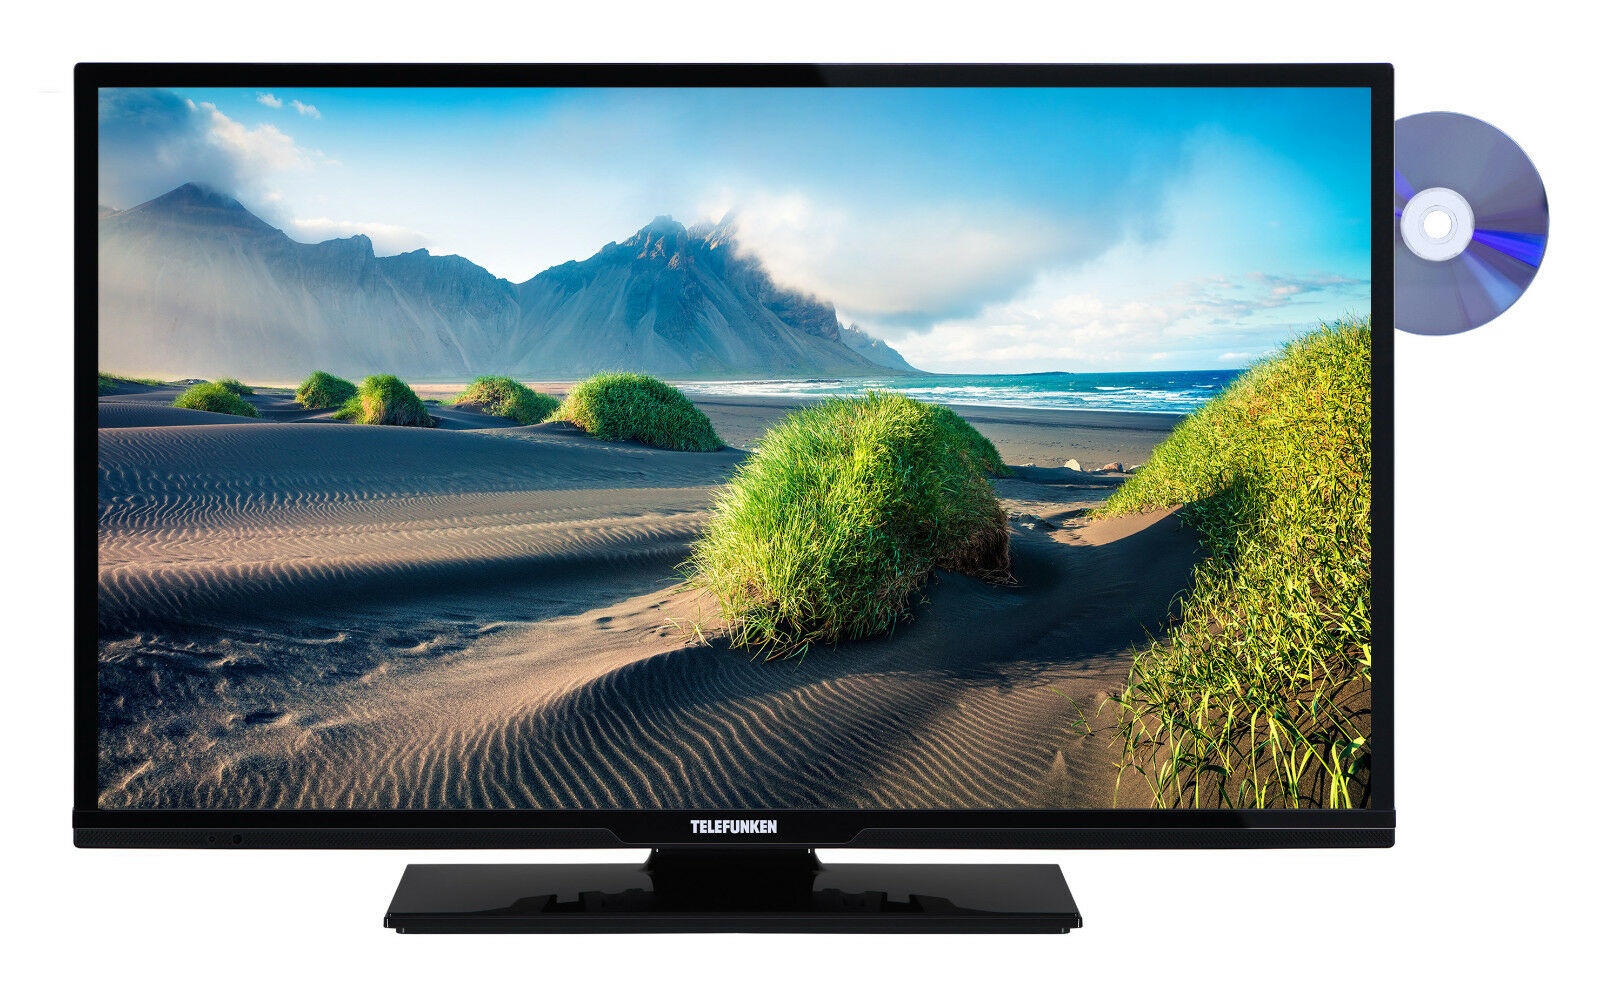 telefunken xh32d401d 32 zoll smarttv mit dvd player hd tv triple tuner wlan eur 249 99. Black Bedroom Furniture Sets. Home Design Ideas